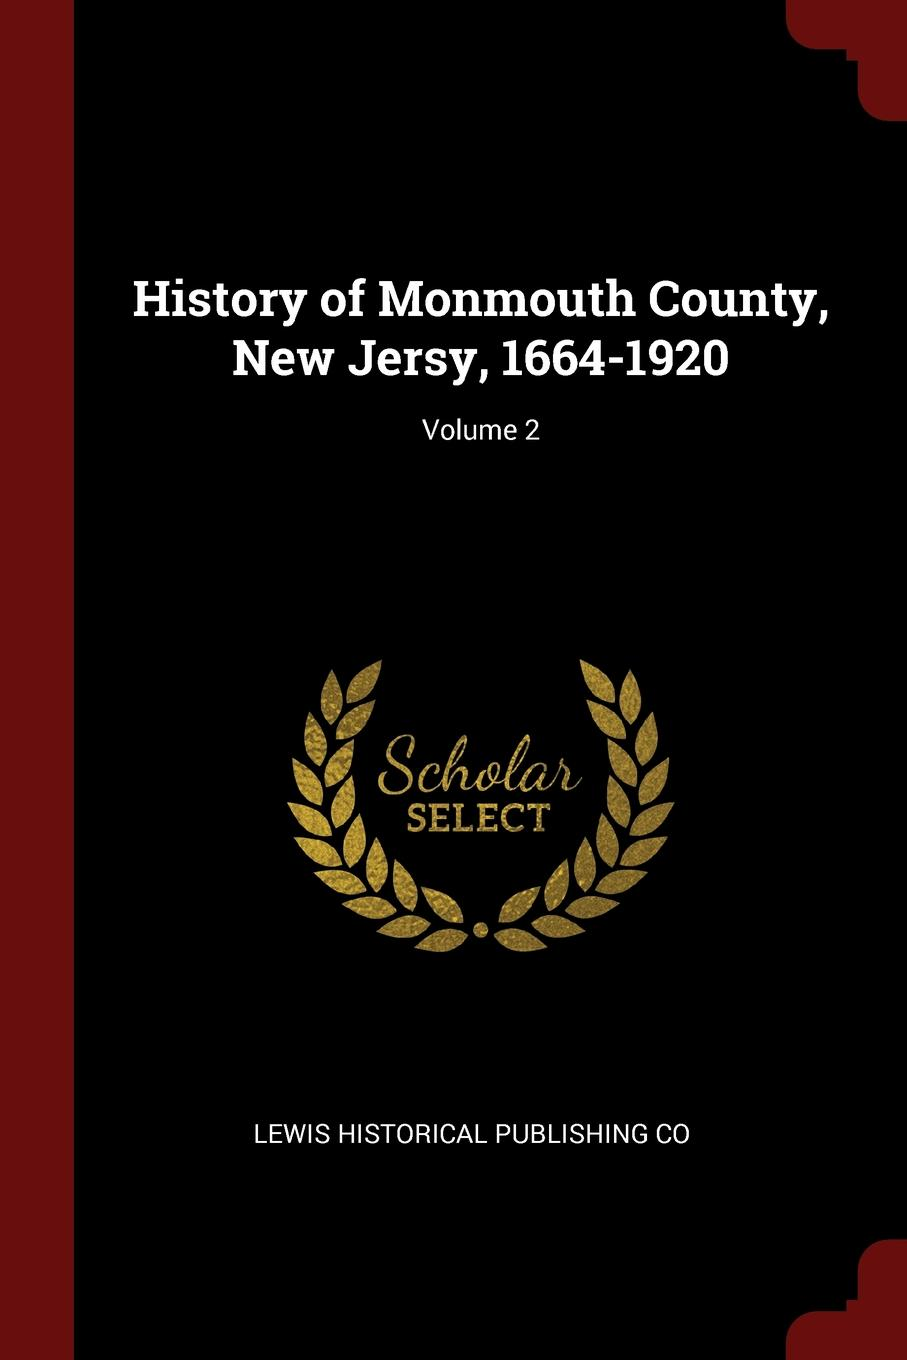 Lewis Historical Publishing Co History of Monmouth County, New Jersy, 1664-1920; Volume 2